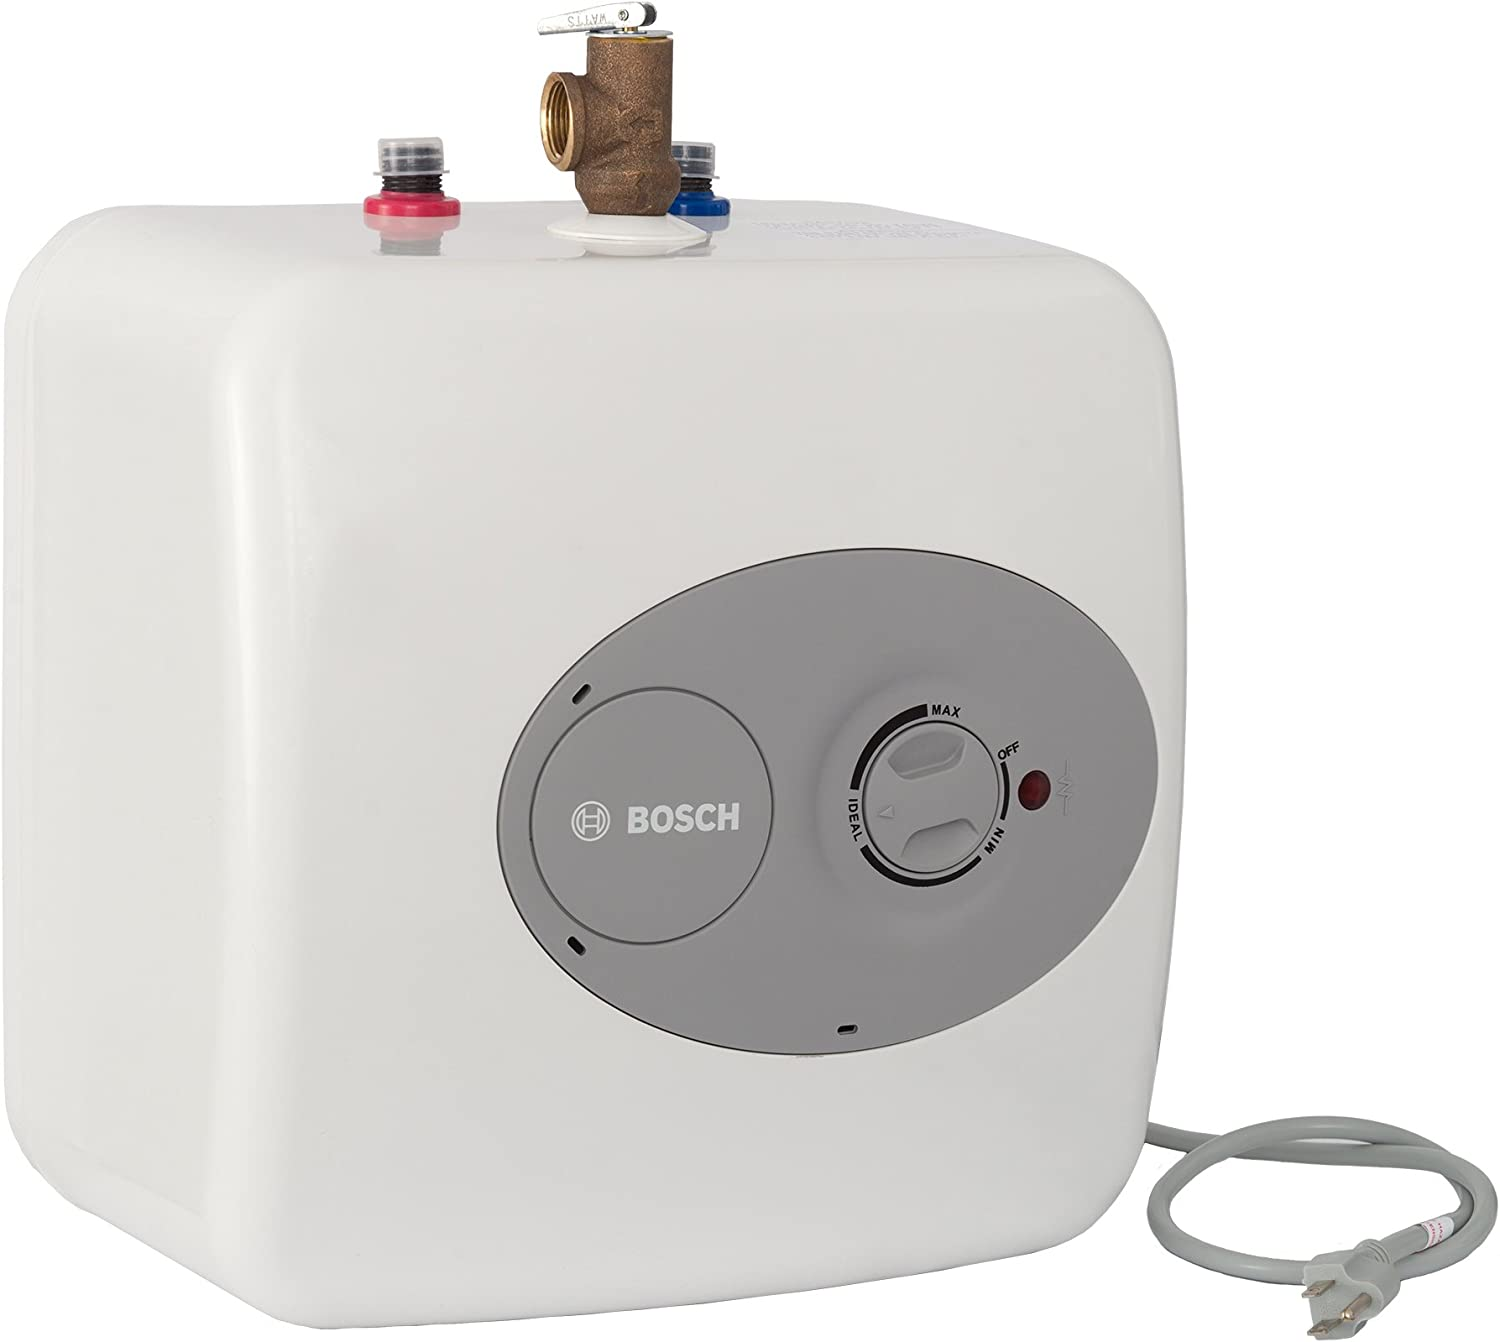 NEW Electric HOT Water Heater Boiler Cylinder Tank Storage 80 L 1.5 KW Unvented